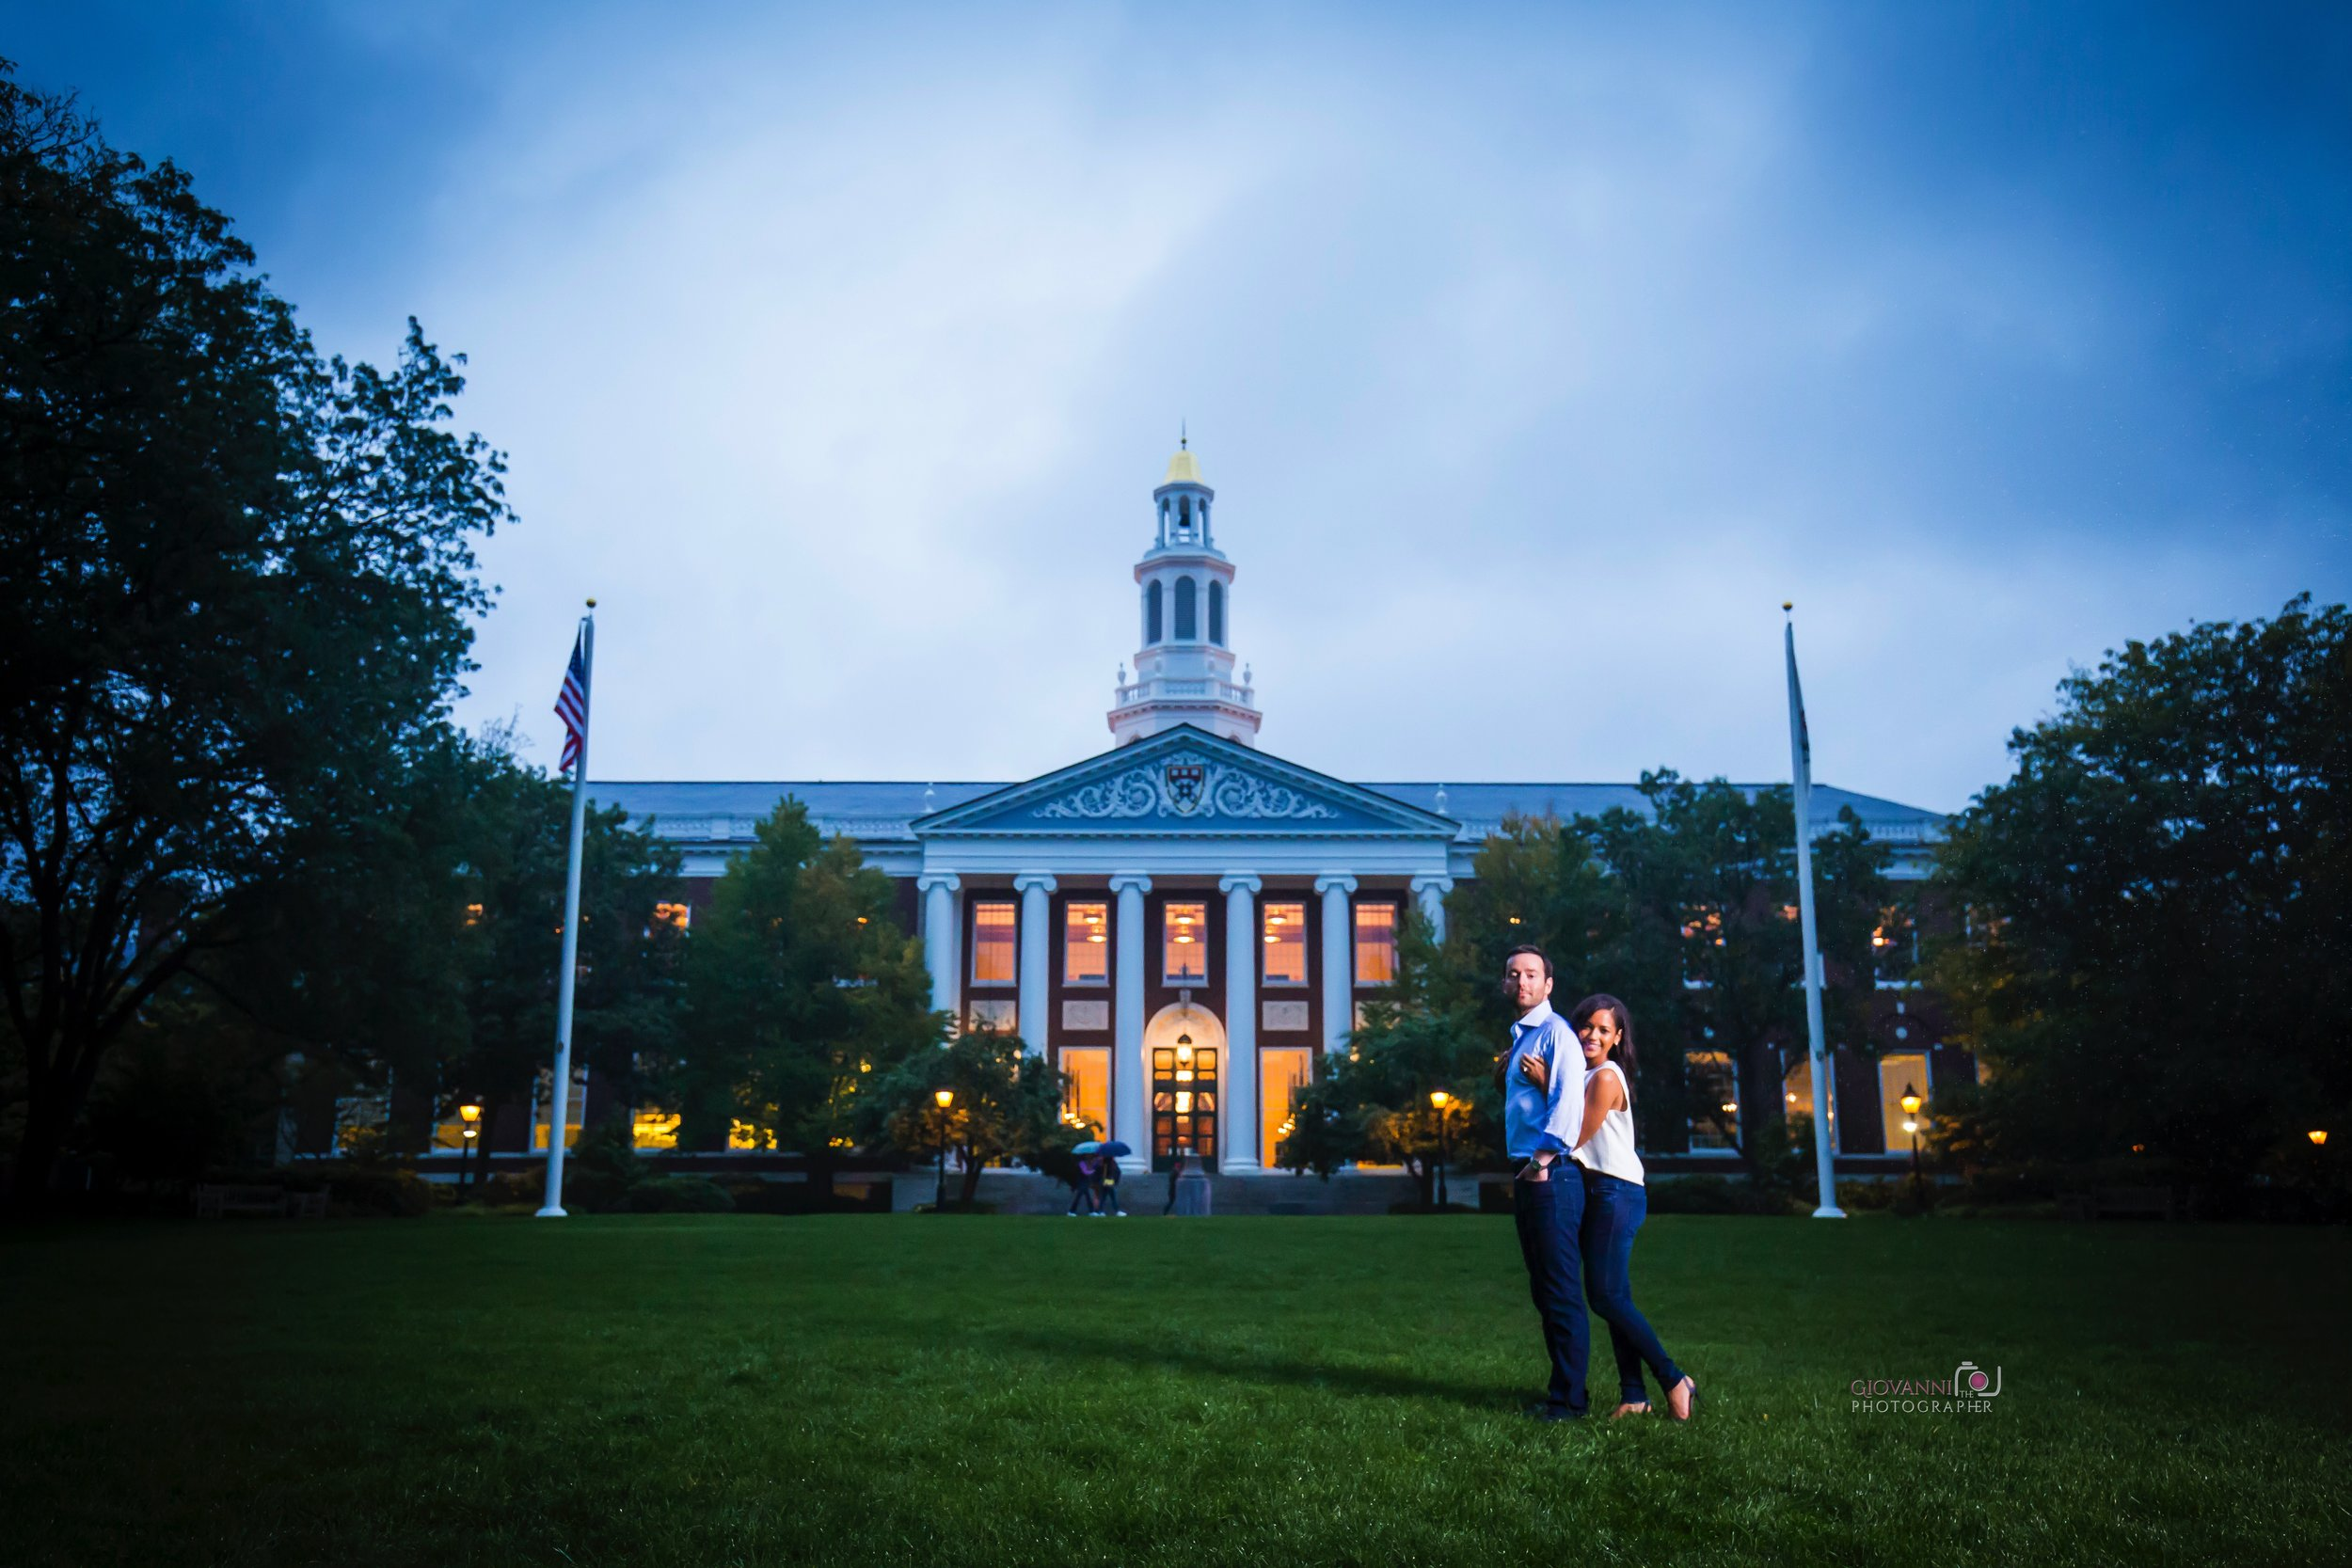 8C2A8648 Giovanni The Photographer Best Boston Engagement Photography Harvard Business School WM.jpg